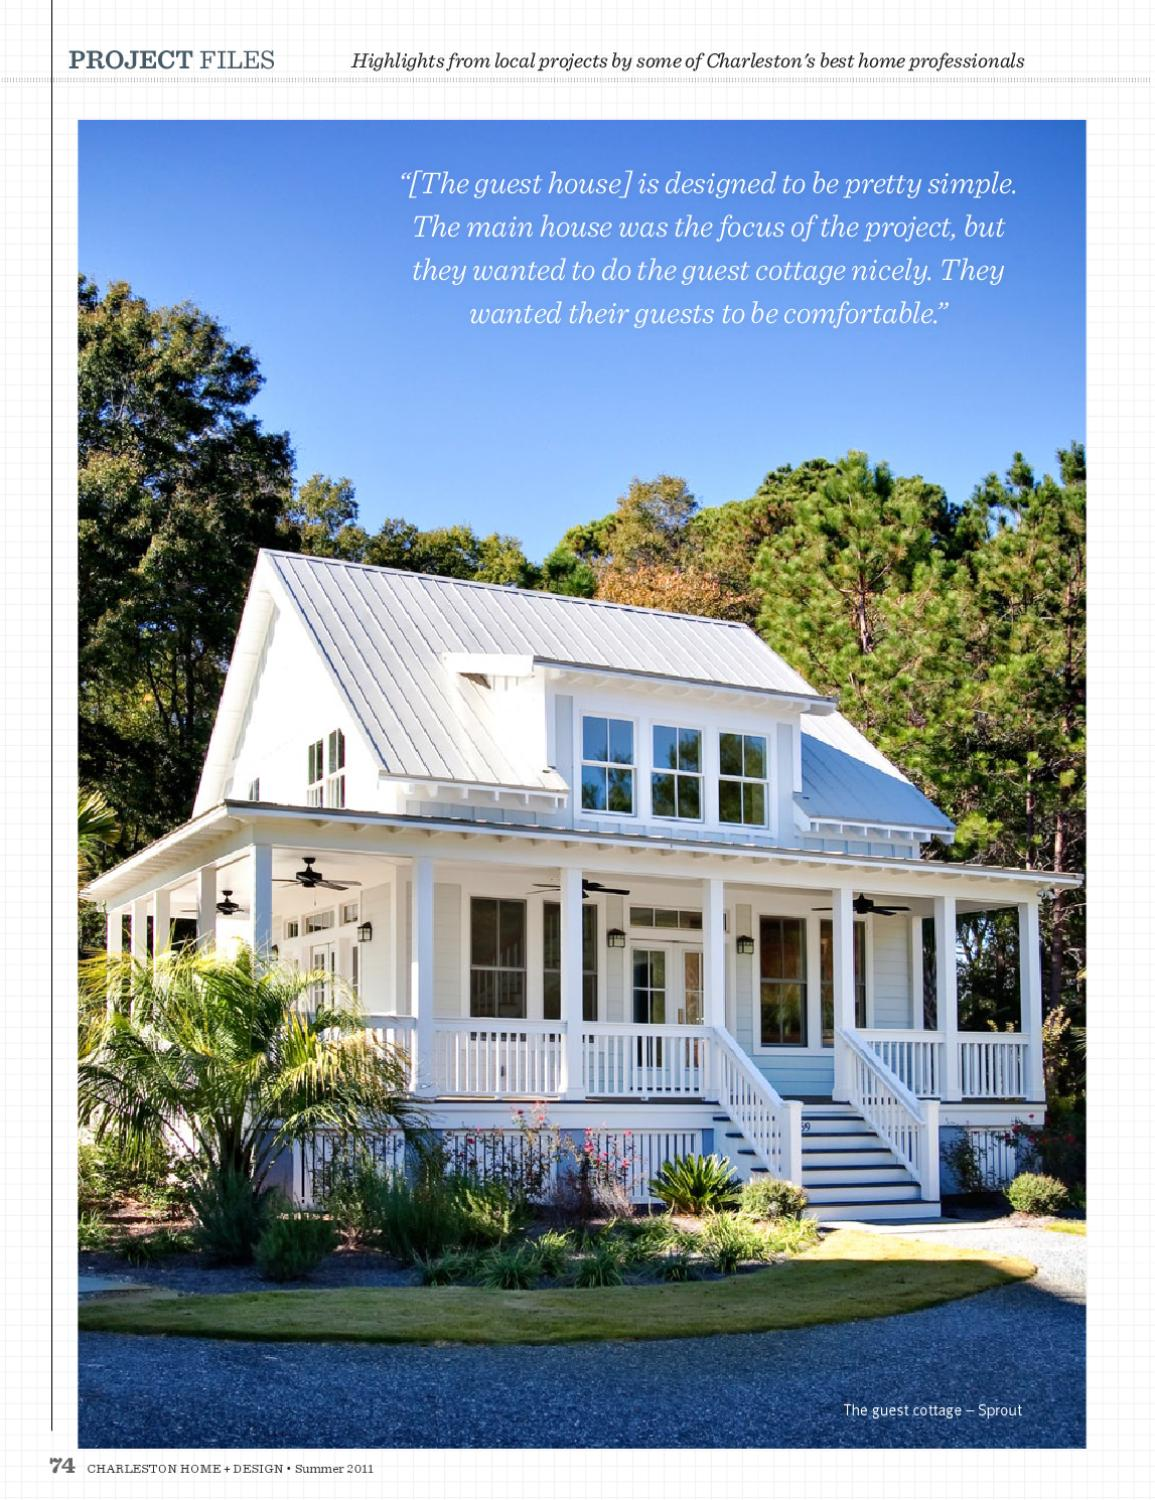 Charleston home design magazine summer 2011 by for Charleston home design magazine